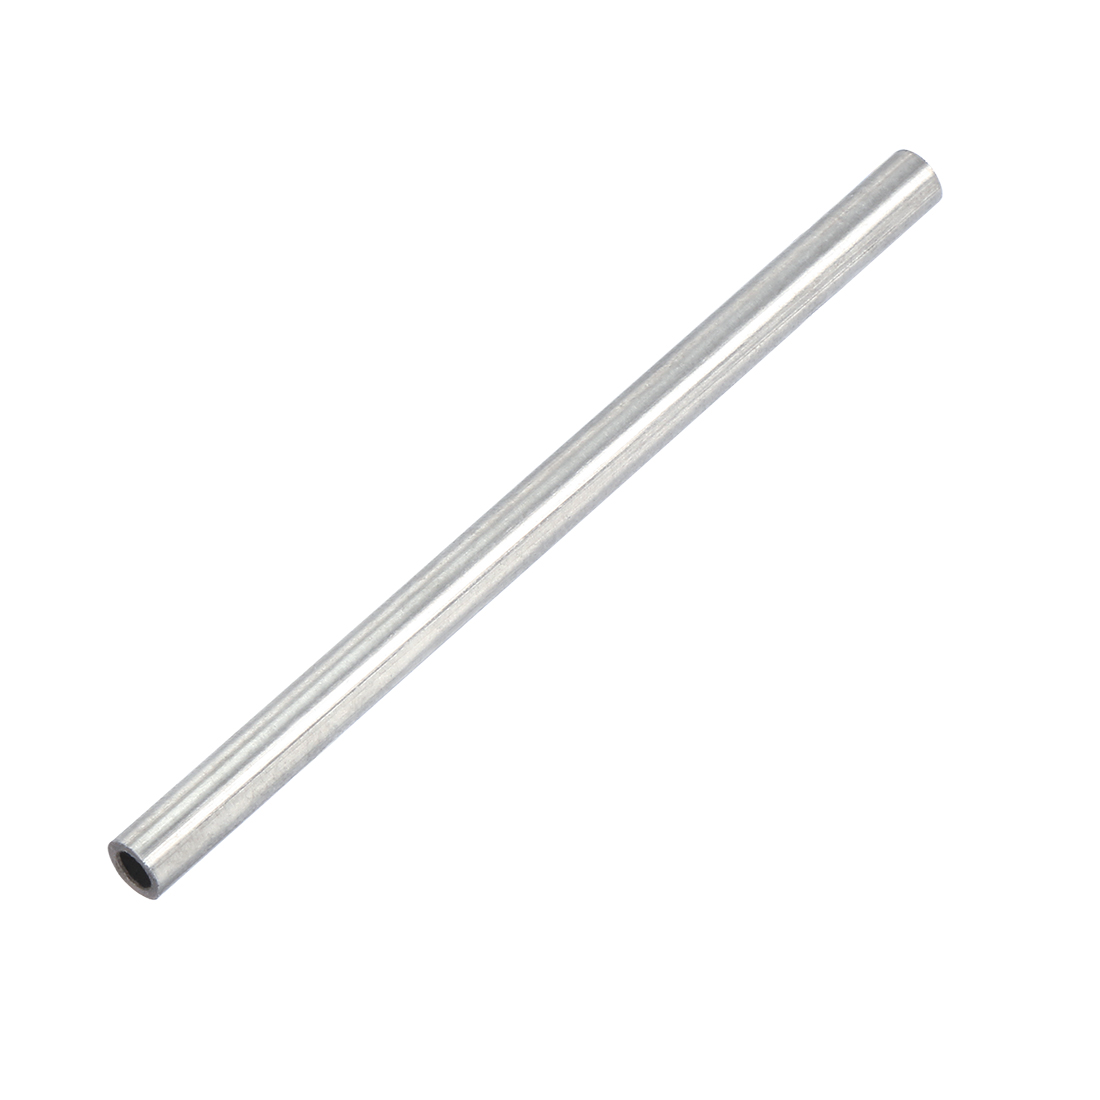 3mmx2mm Stainless Steel Round Shaft Rod Axle 50mm Length for DIY Toy Car